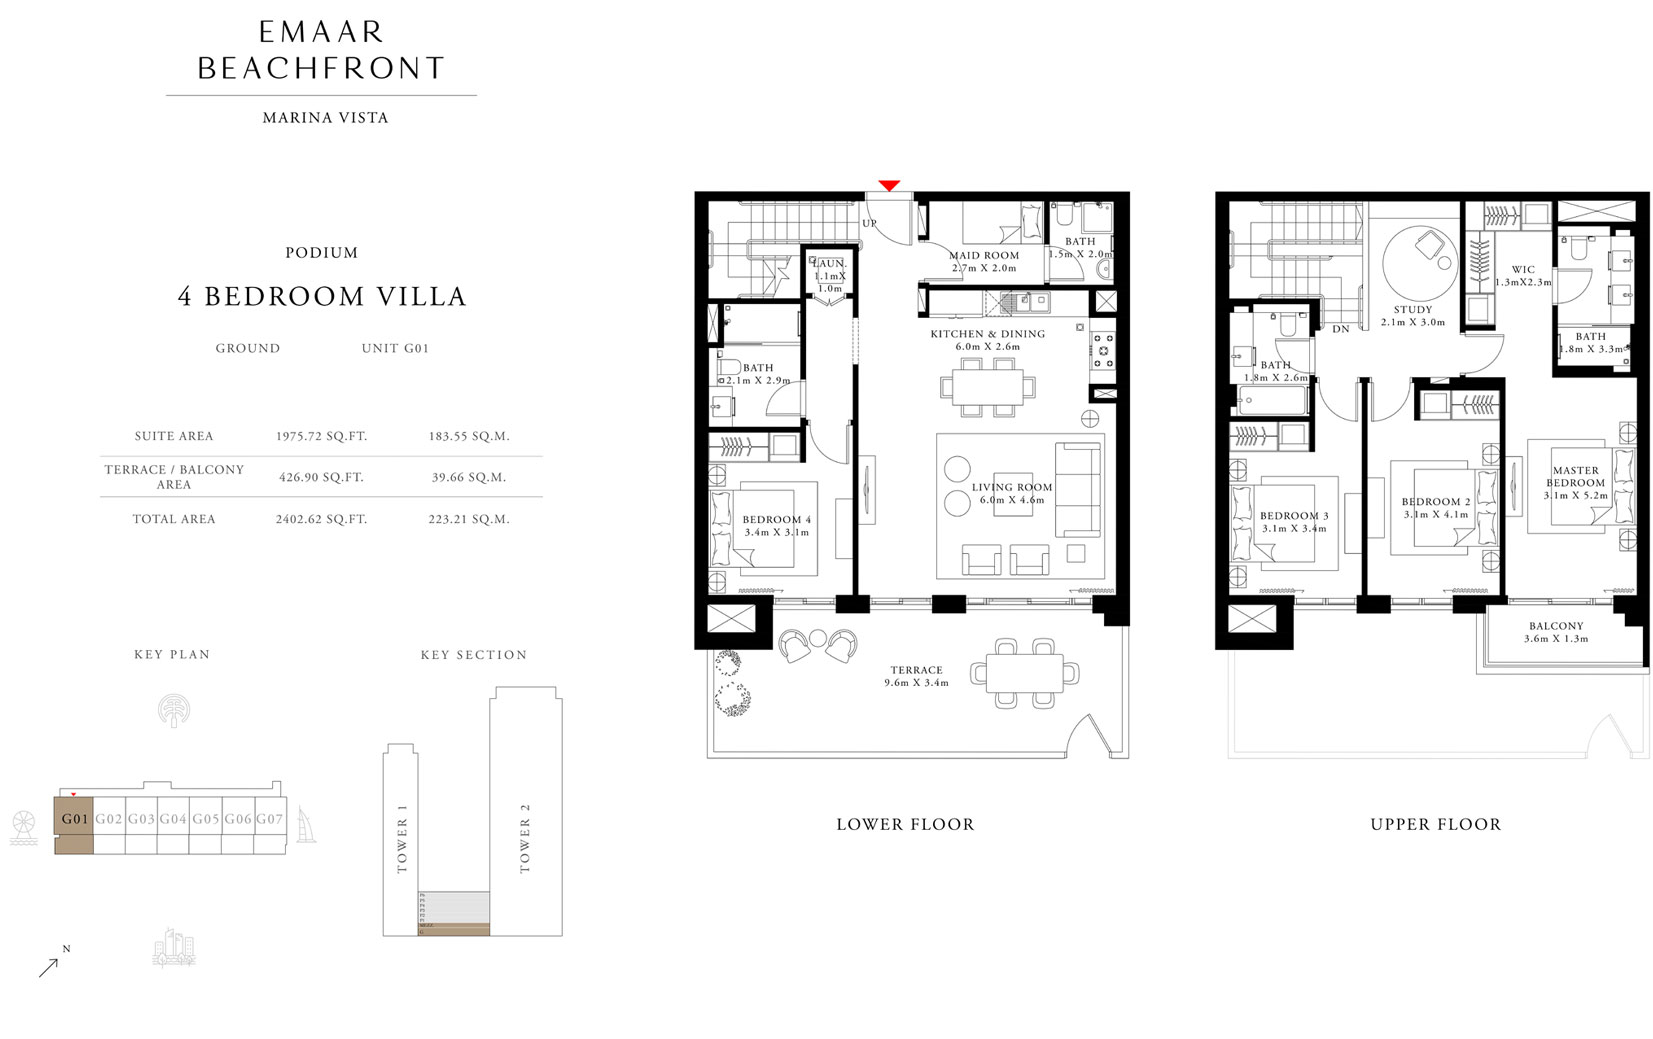 4 Bedroom Villa, Podium, Ground, Unit G01, Size 2402.62 Sq Ft